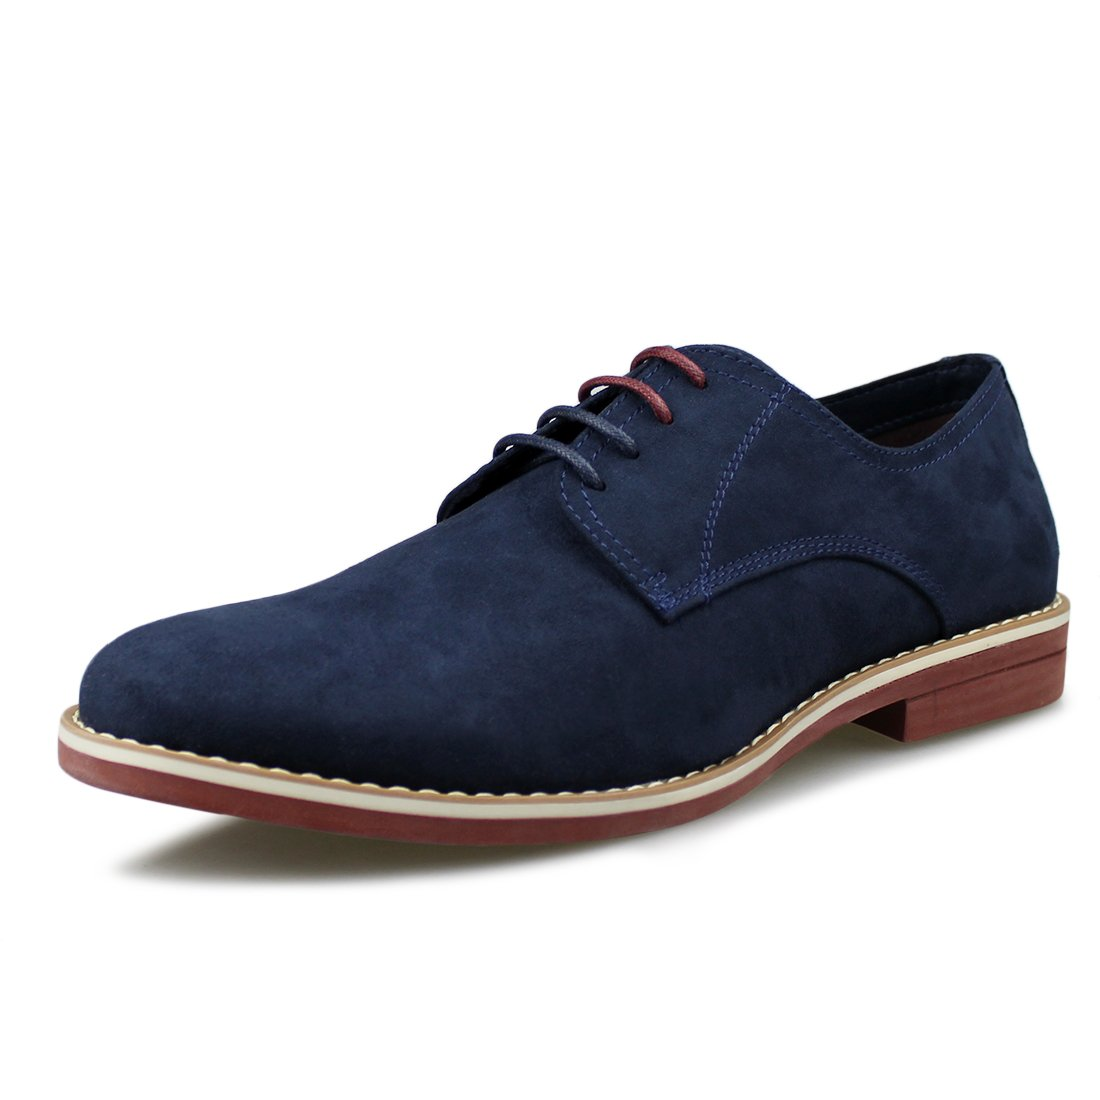 Hawkwell Men's Casual Suede Classic Lace up Oxfords Shoes,Navy Suede PU,12 M US